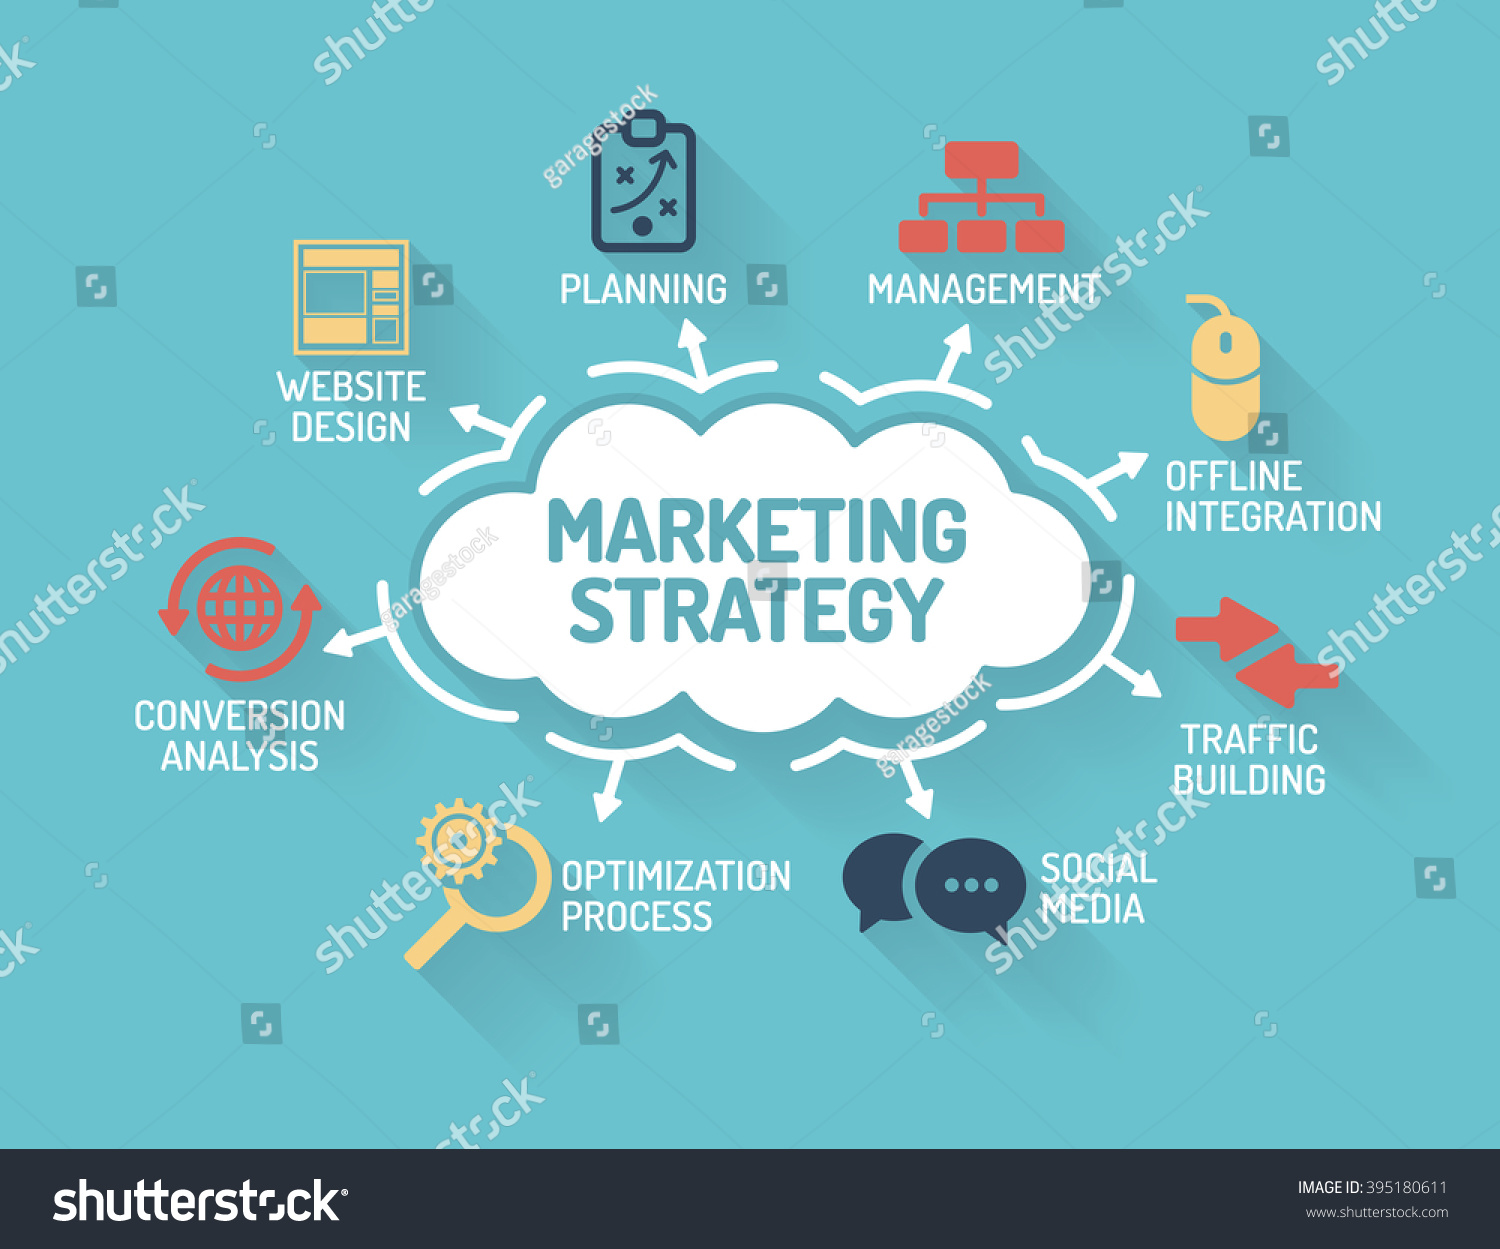 keywords marketing